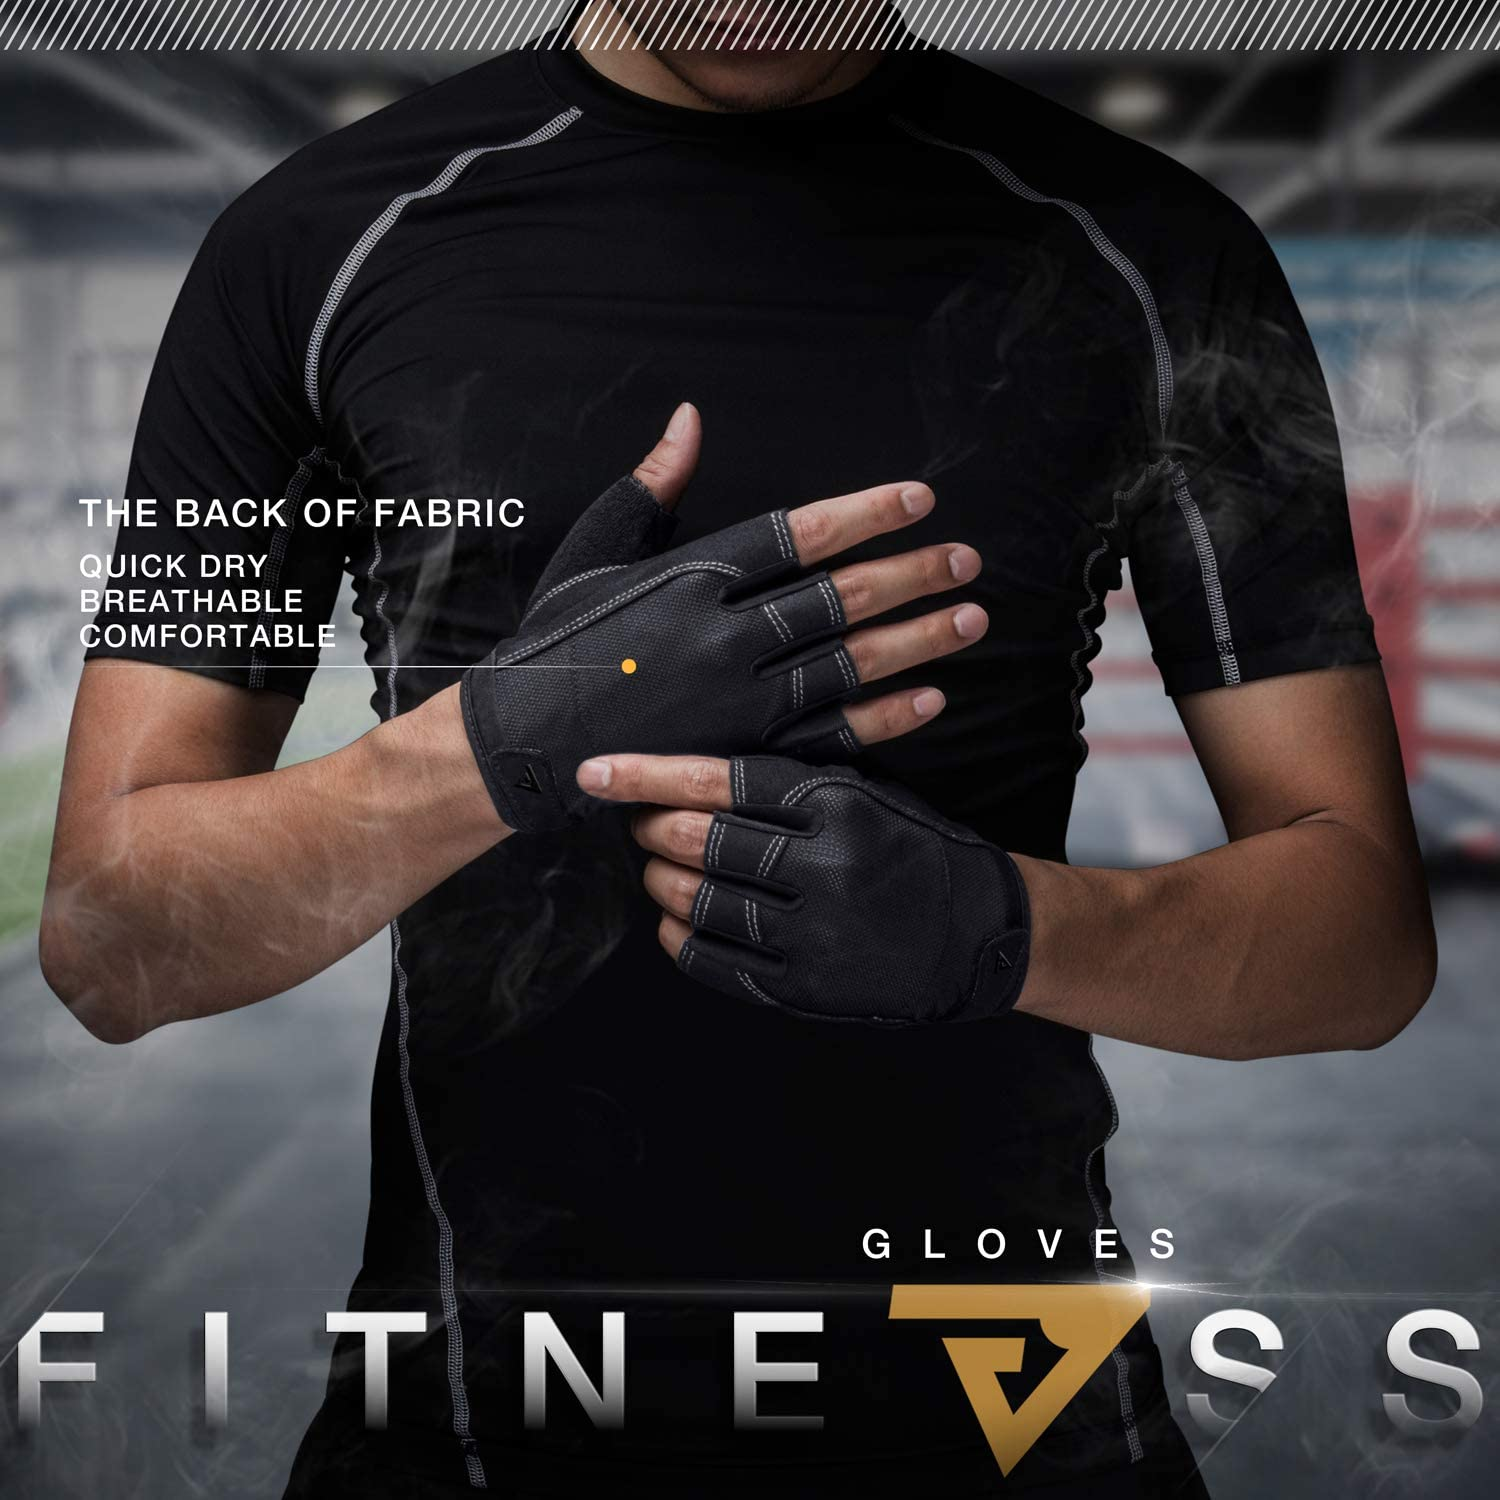 Gym Gloves with Wrist Support for Lifting Training Fitness Exercise Full Palm Protection /& Wrist Protection VIVIMI Weight Lifting Gloves Workout Gloves Men and Women